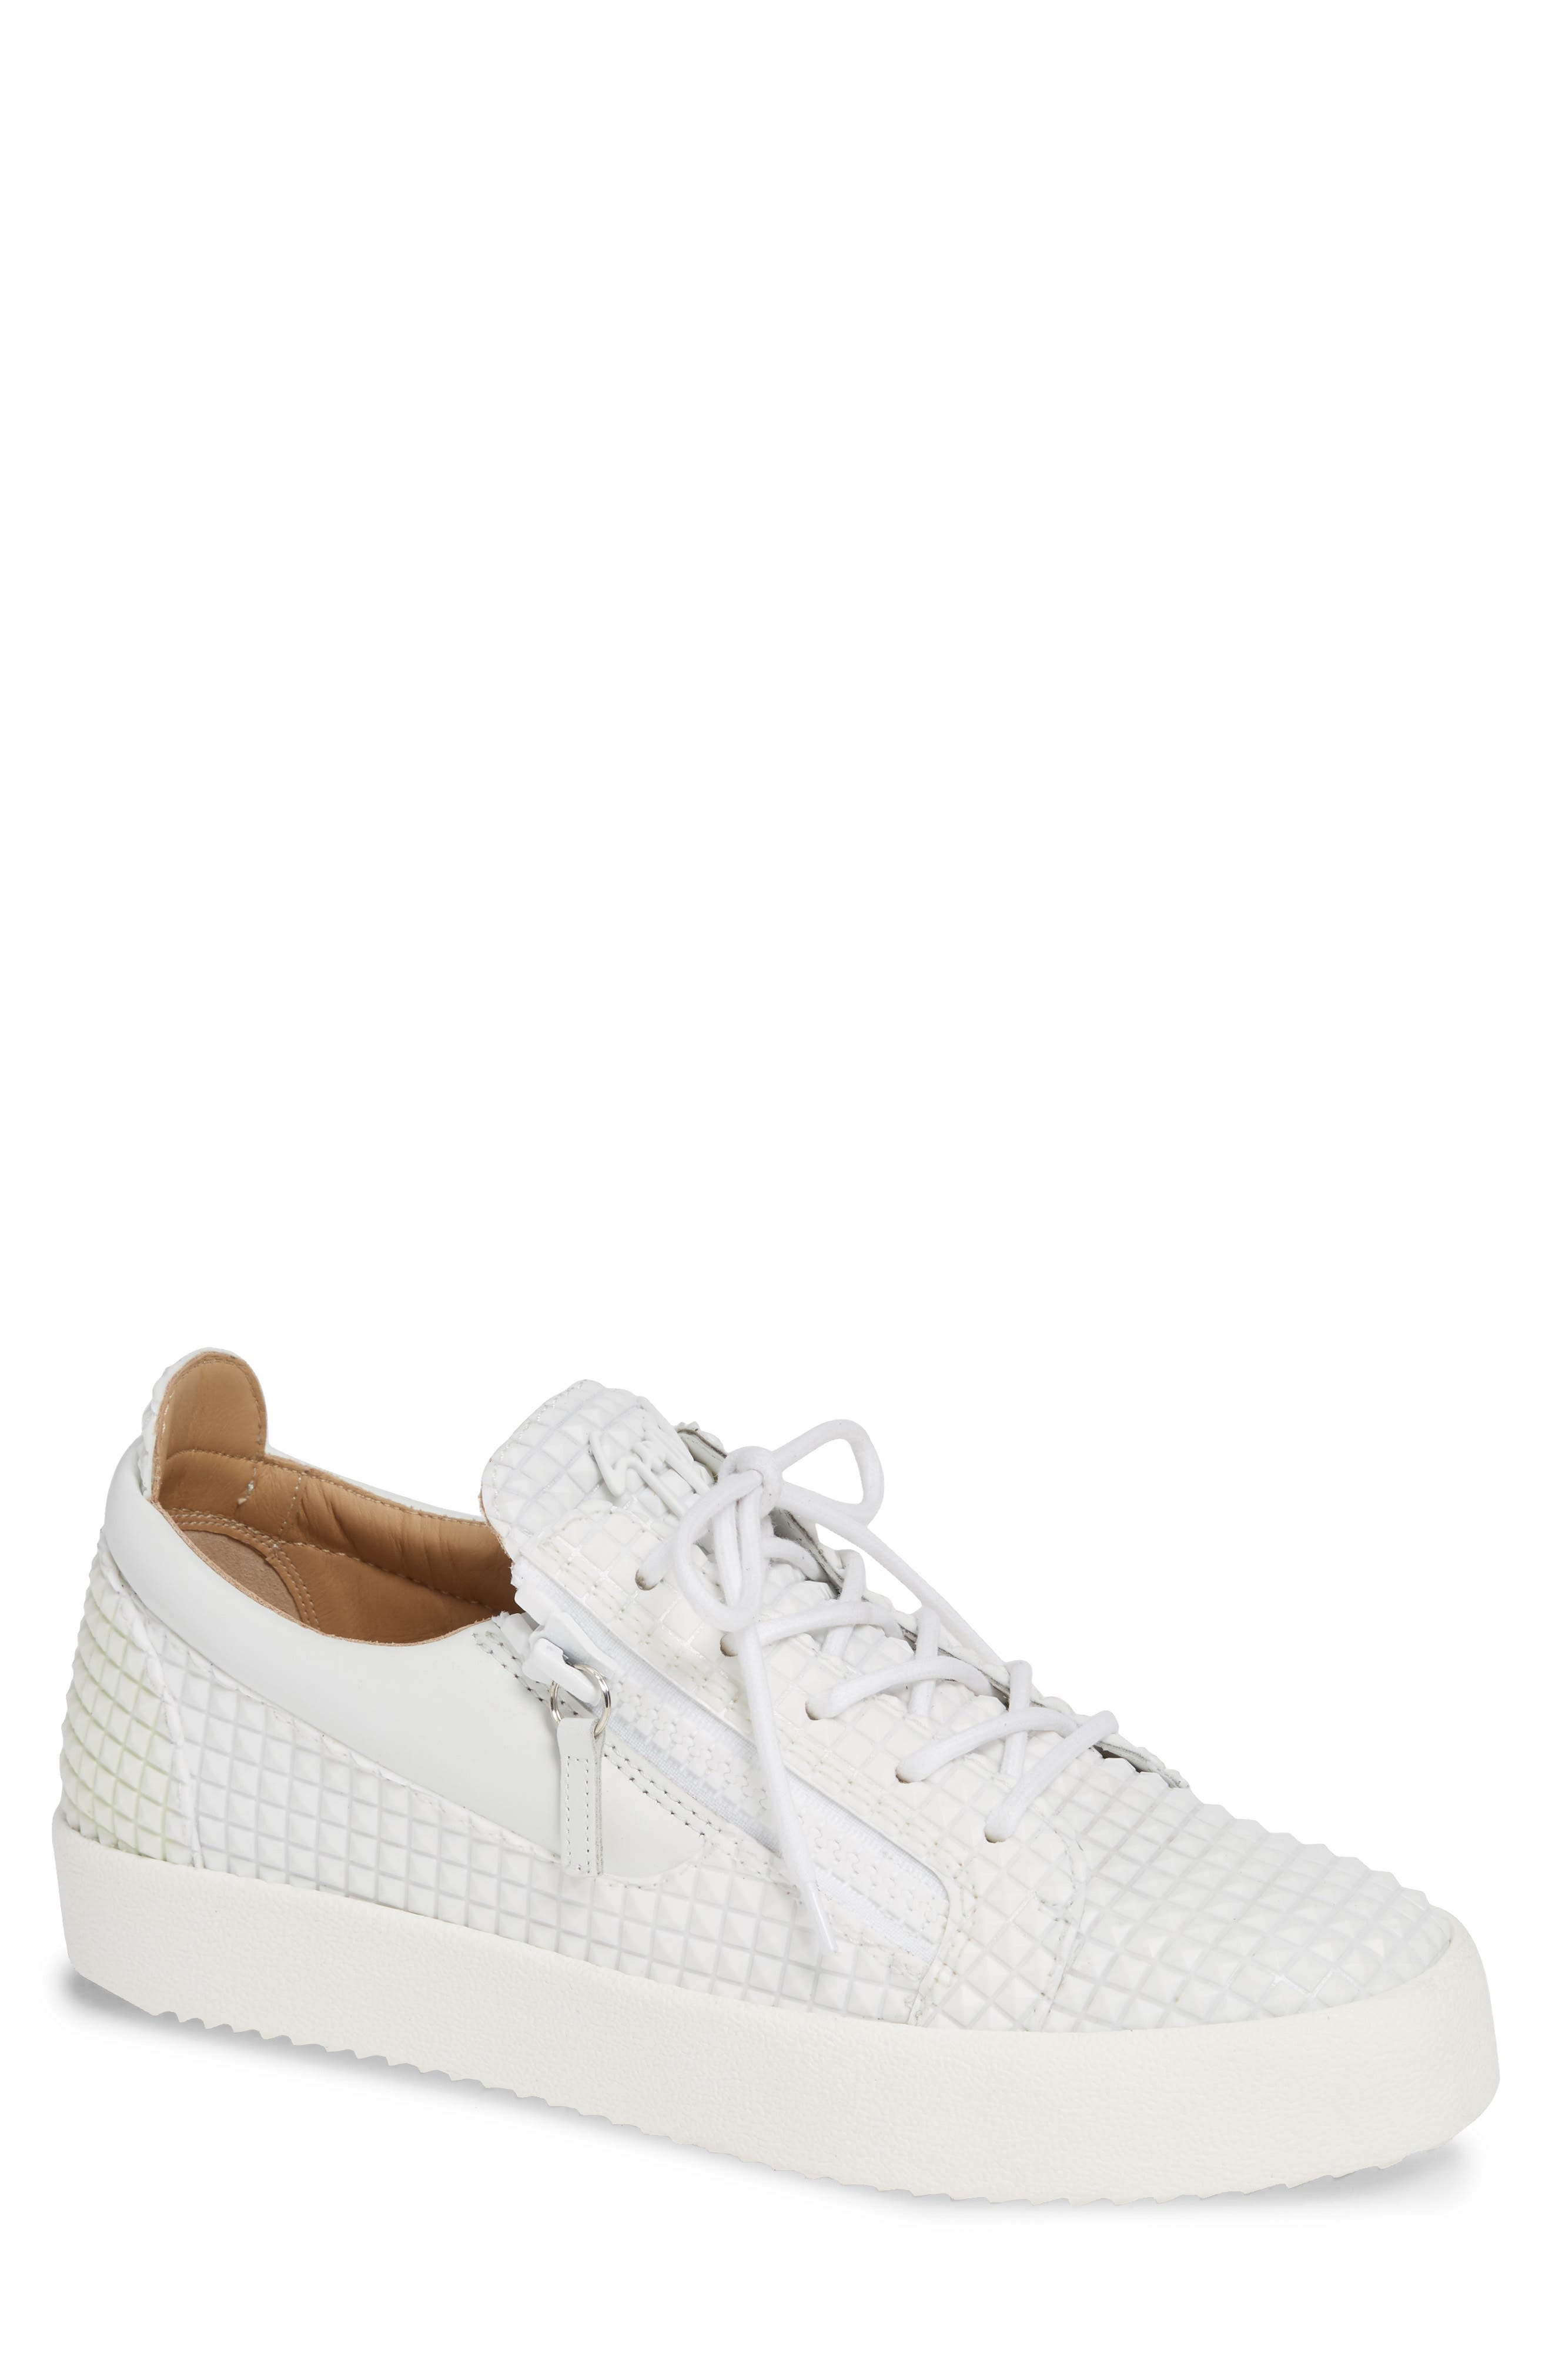 Men'S Croc-Embossed Leather Low-Top Sneakers in White